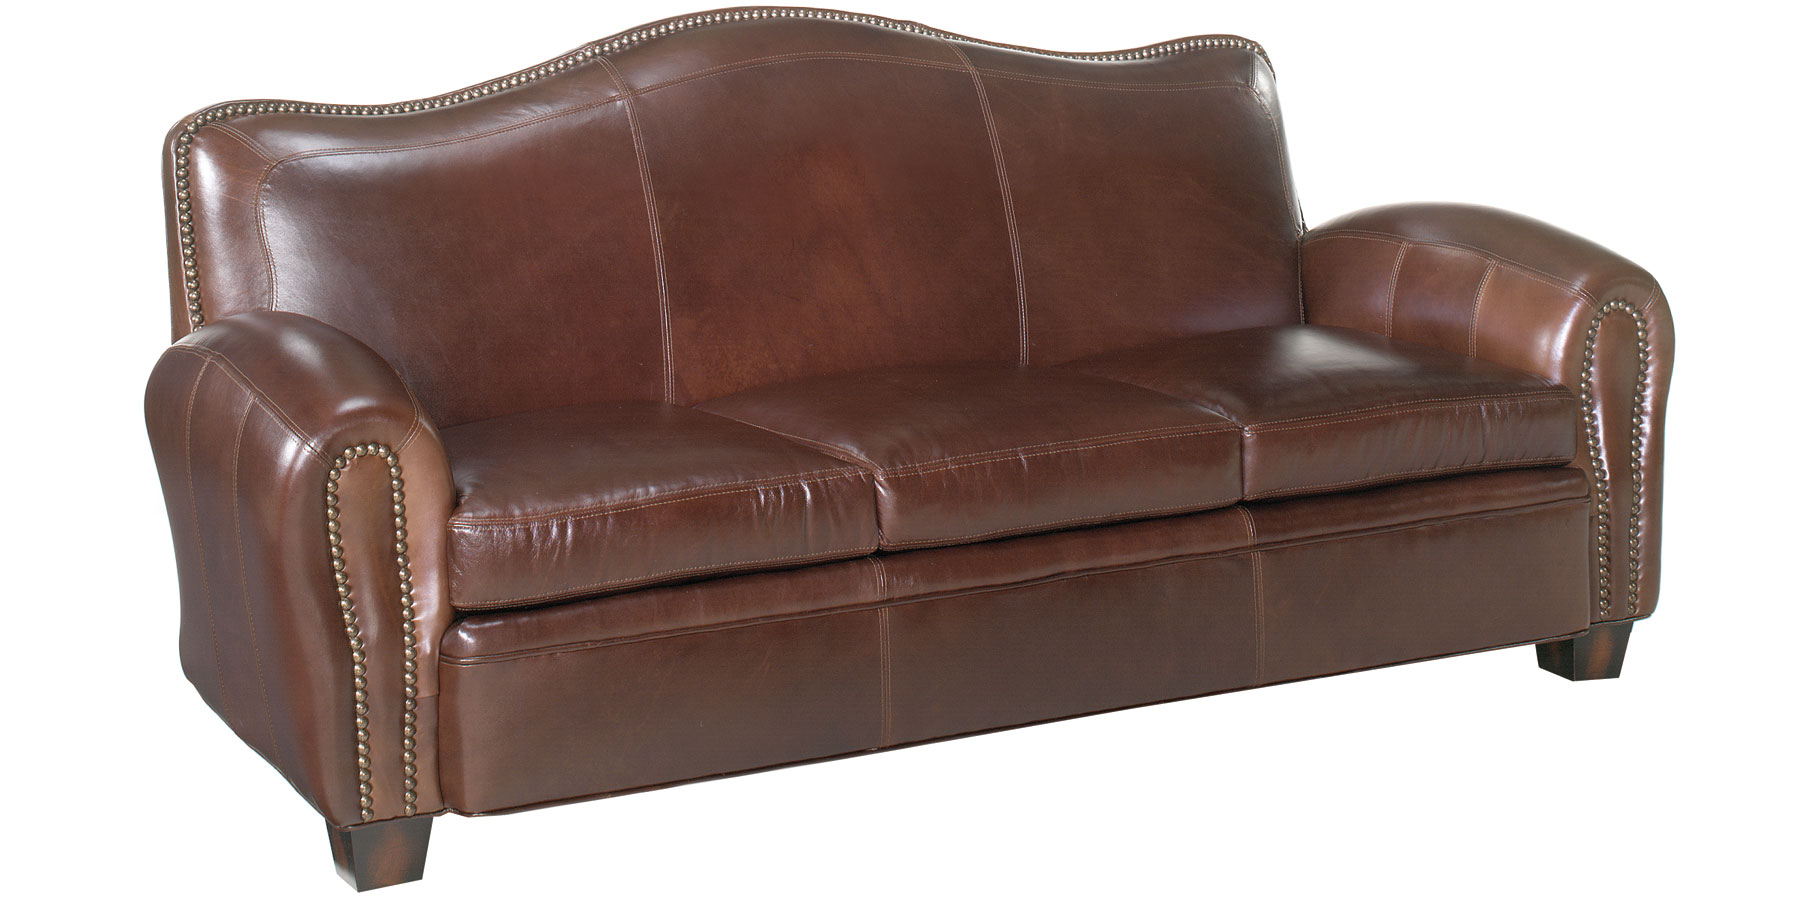 Leather Camelback Set Club Chair Loveseat Sofa Ottoman W Trim